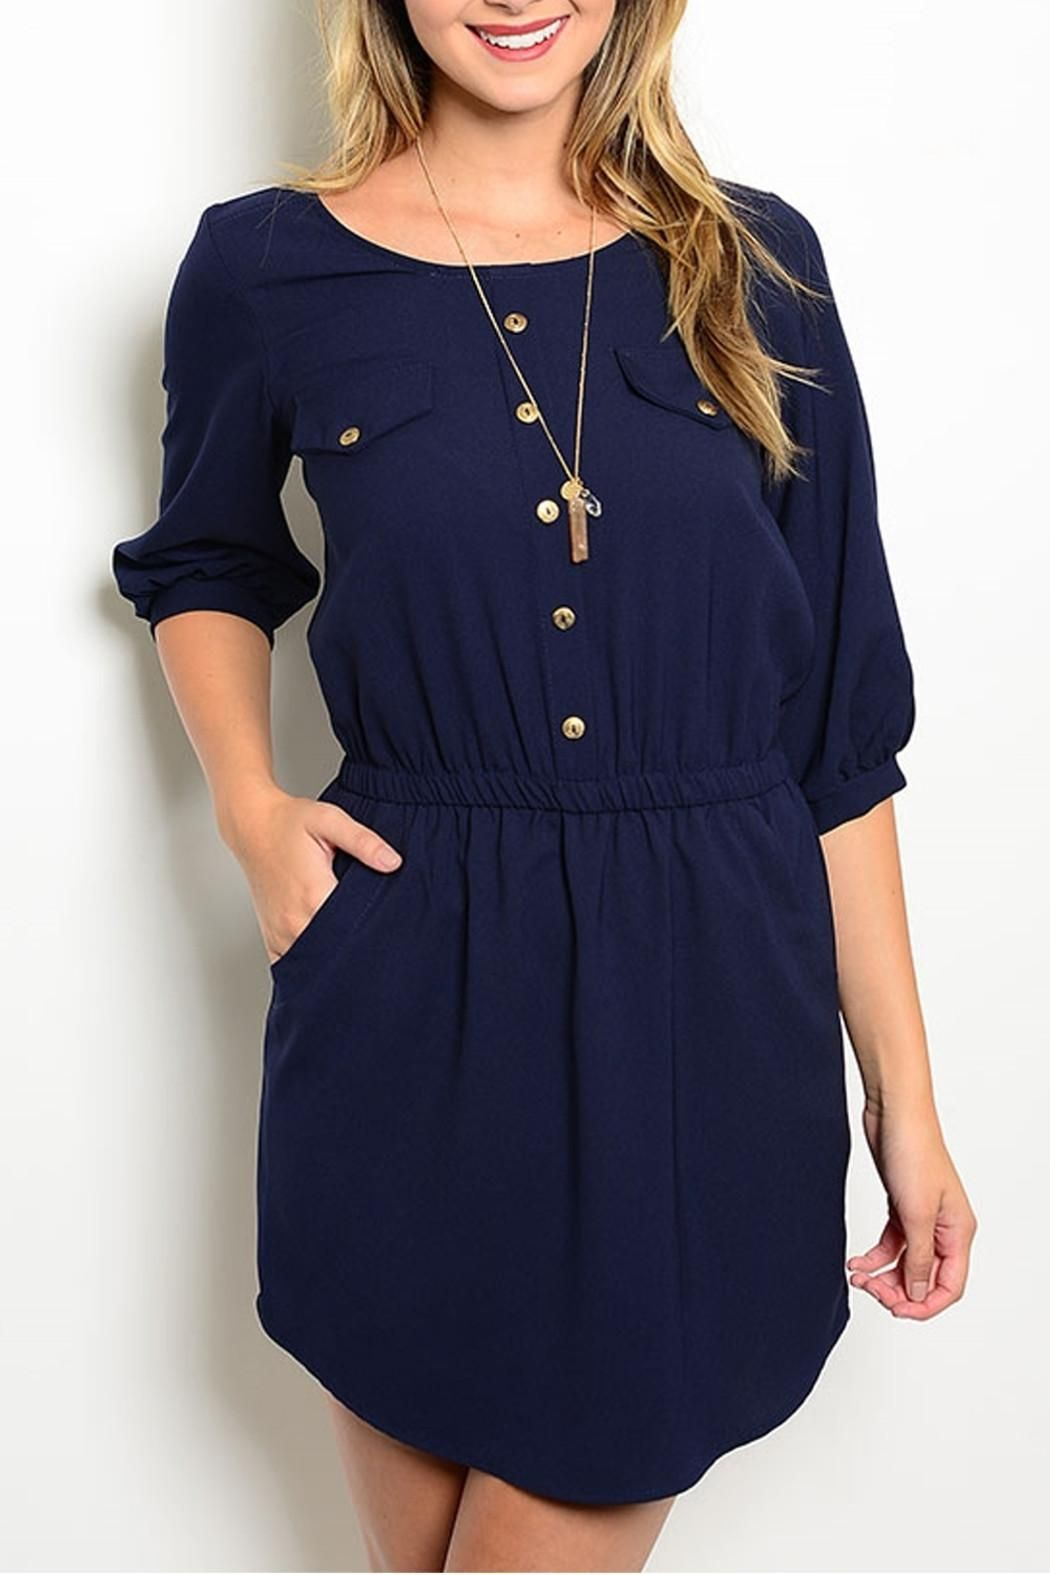 Woven dress features a rounded neckline 6aaadd66e